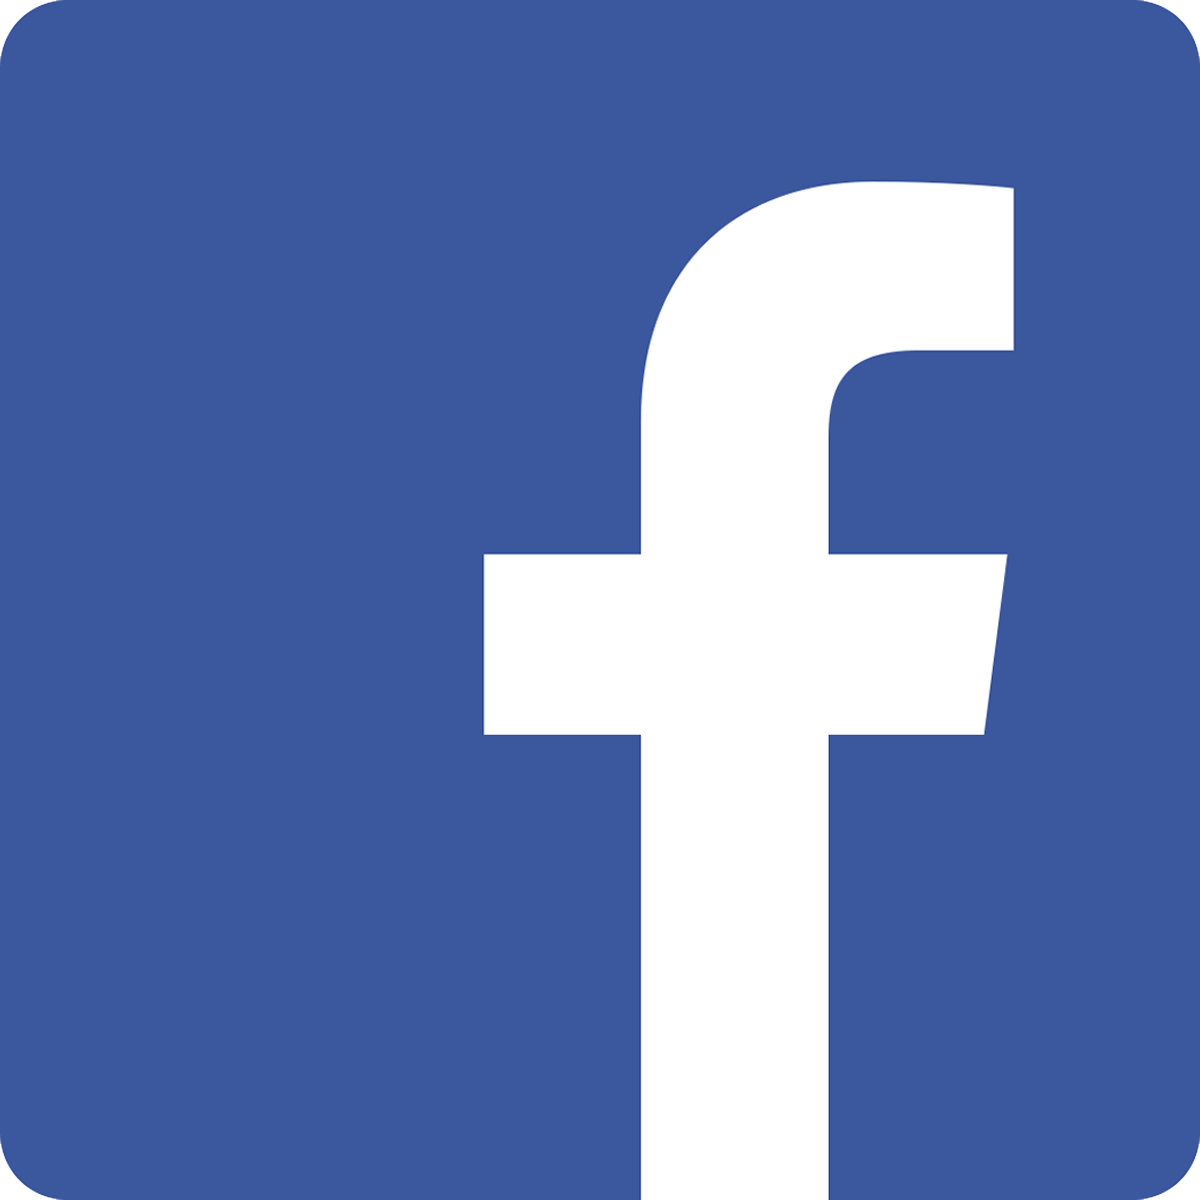 Facebook Logo 2014 Png Facebook logo png transparent